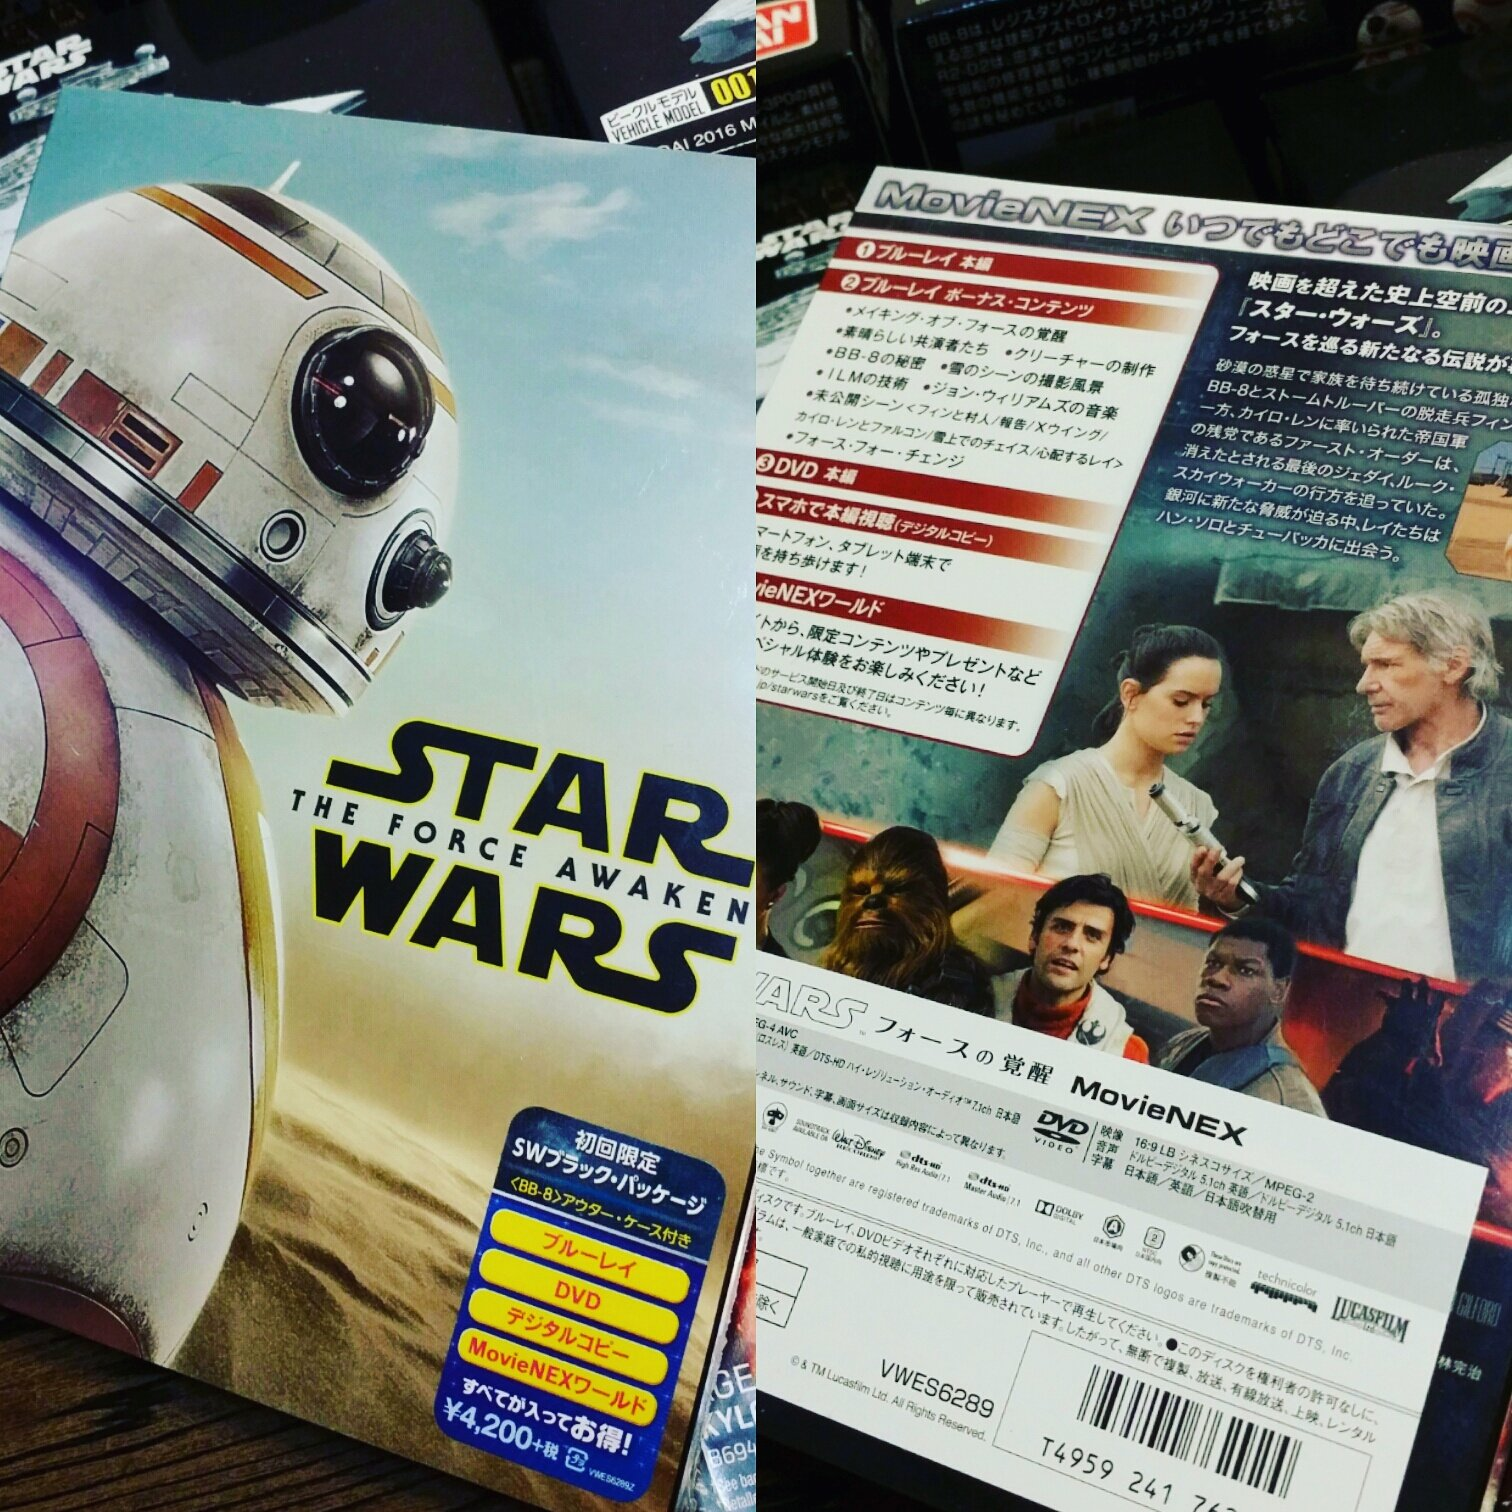 Japanese edition MovieNEX Star Wars The Force Awakens blu ray